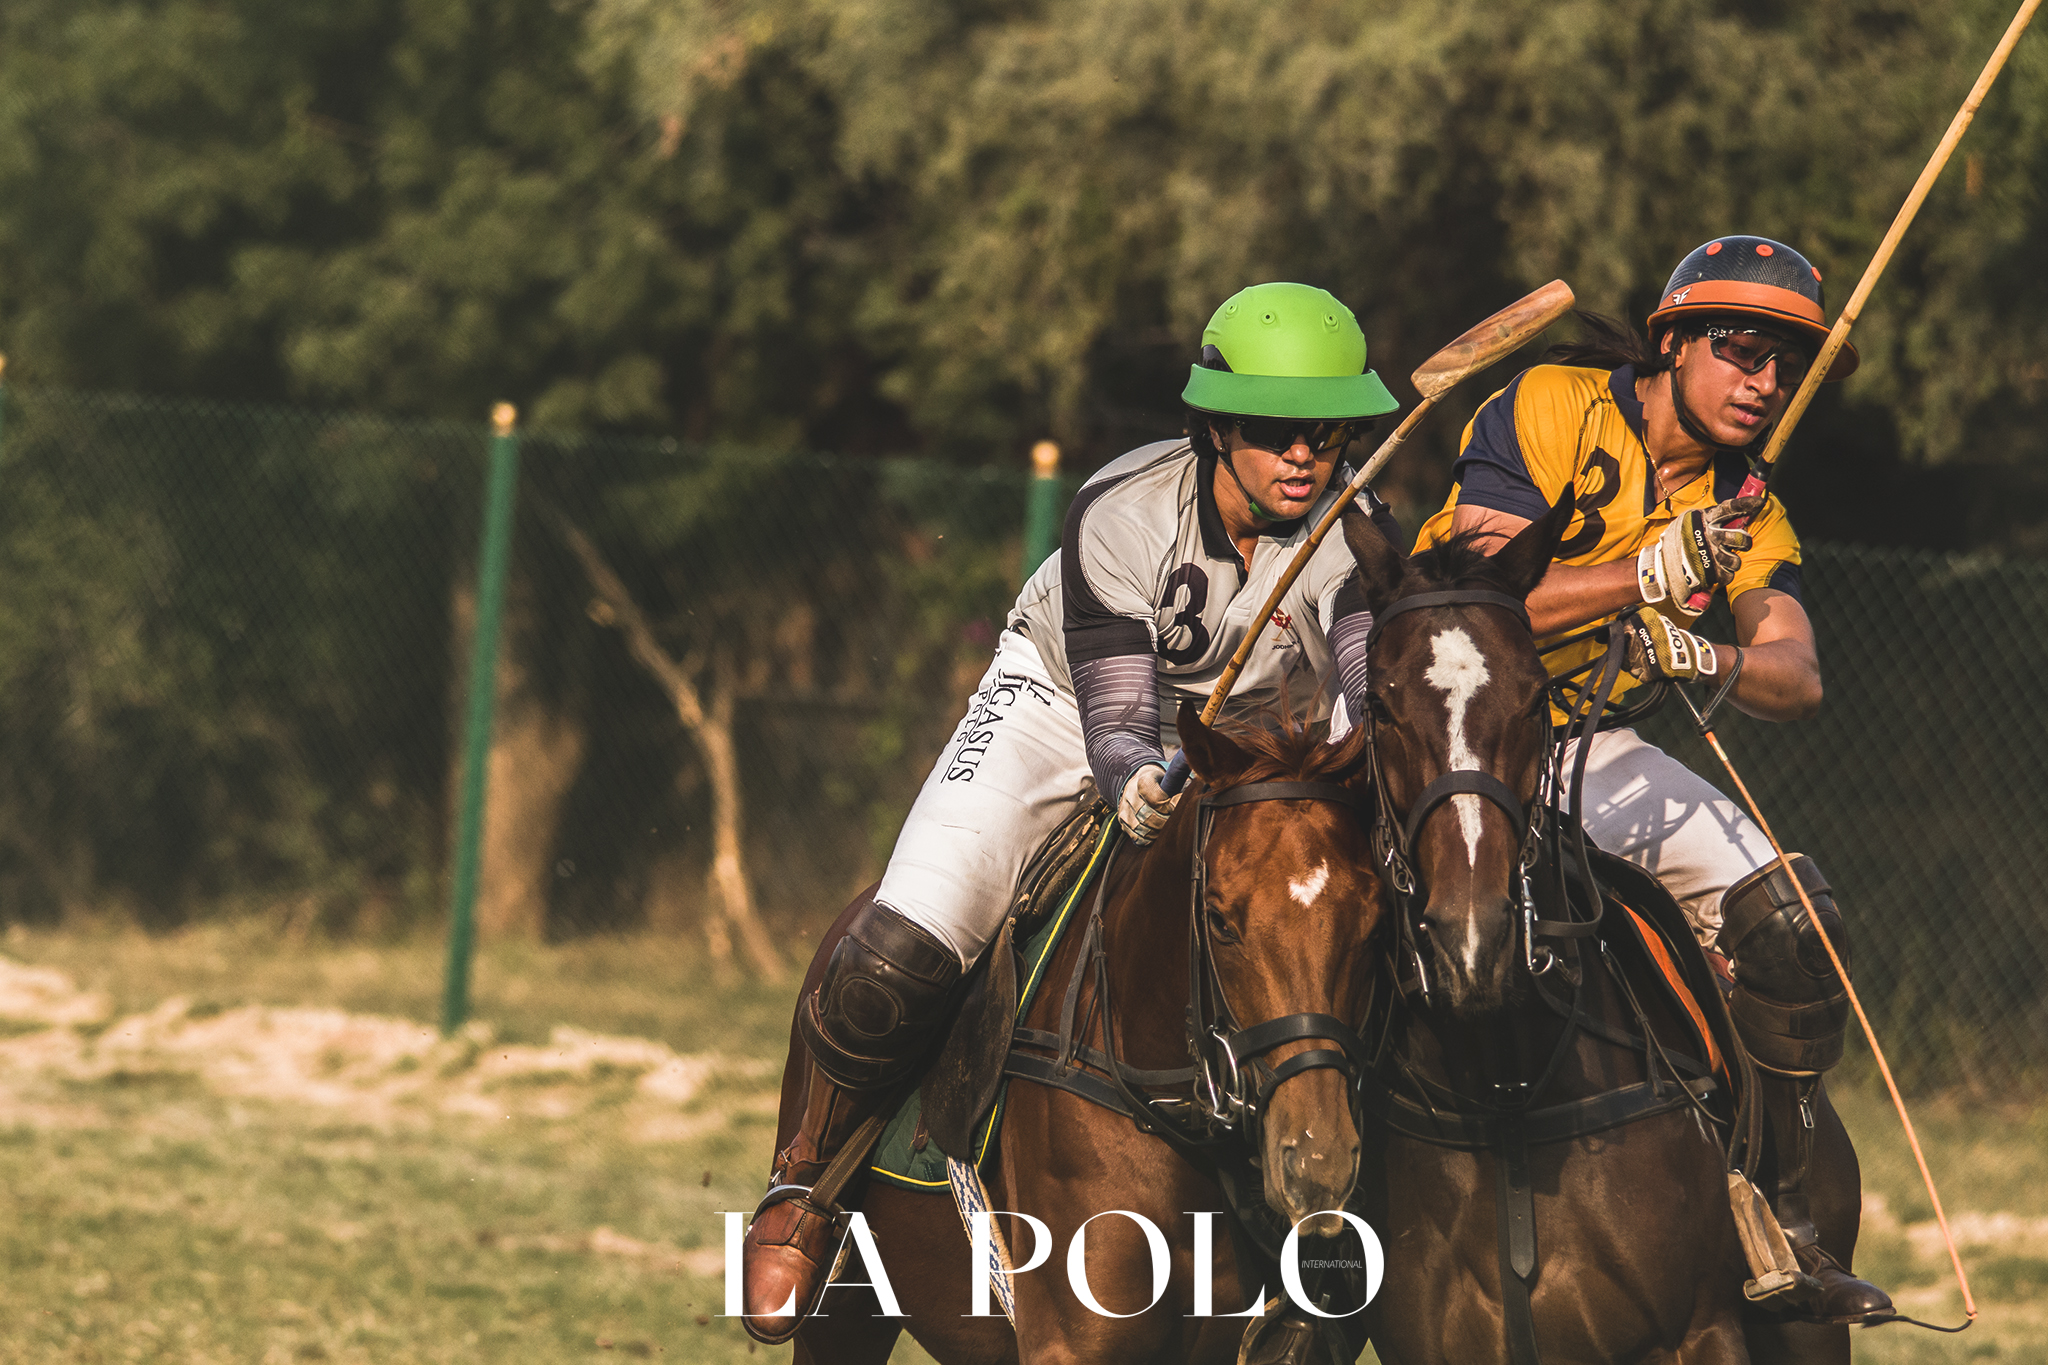 THE HERMES CUP-ARENA POLO!